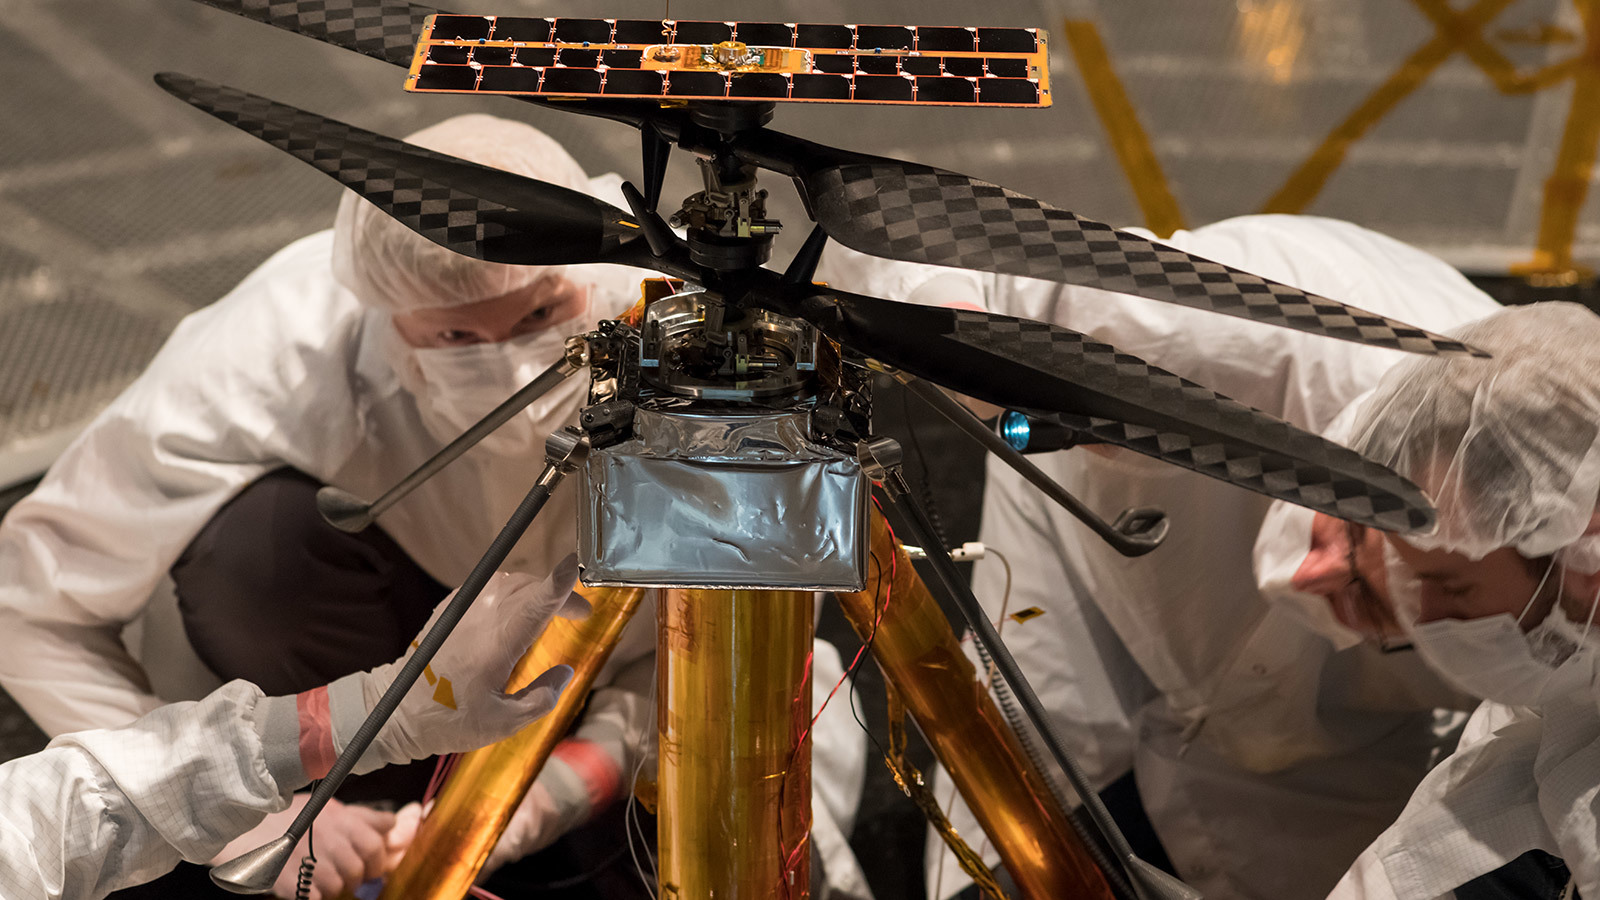 Members of the NASA Mars Helicopter team inspect the flight model.